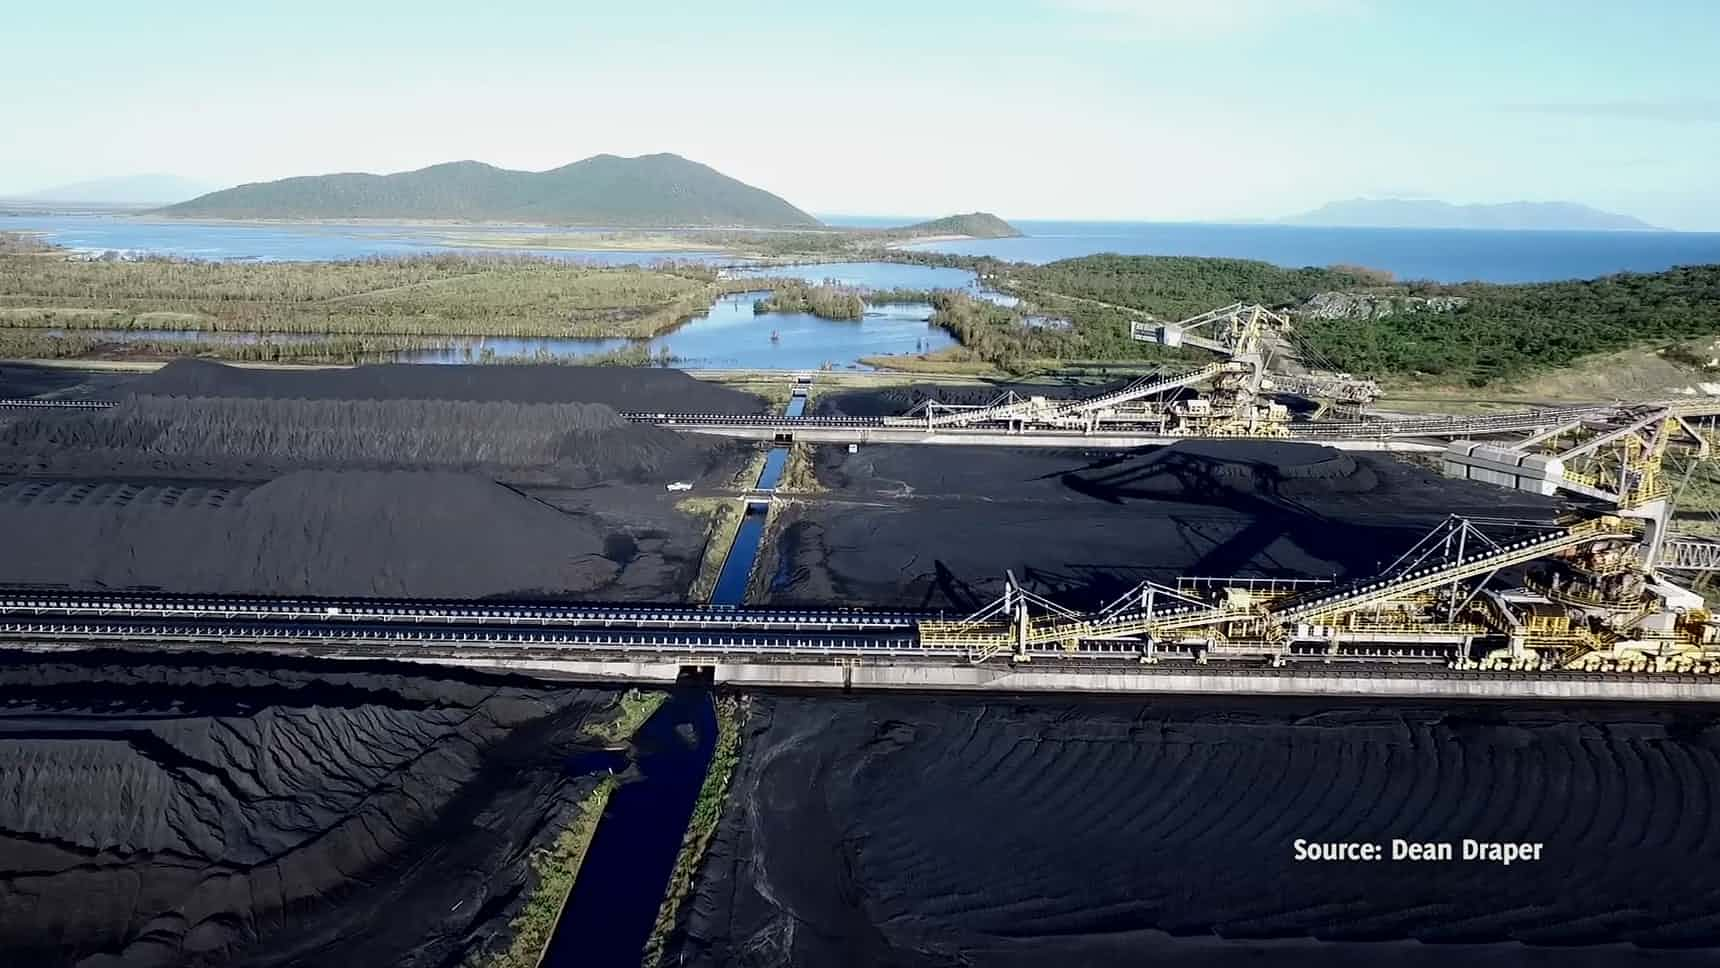 pt adani global coal trading Indoindianscom is the indian community portal for indonesia since year 2000 the website is a repository of information in news, businesses, cultural, and various other activities of interest to the indian community in indonesia.